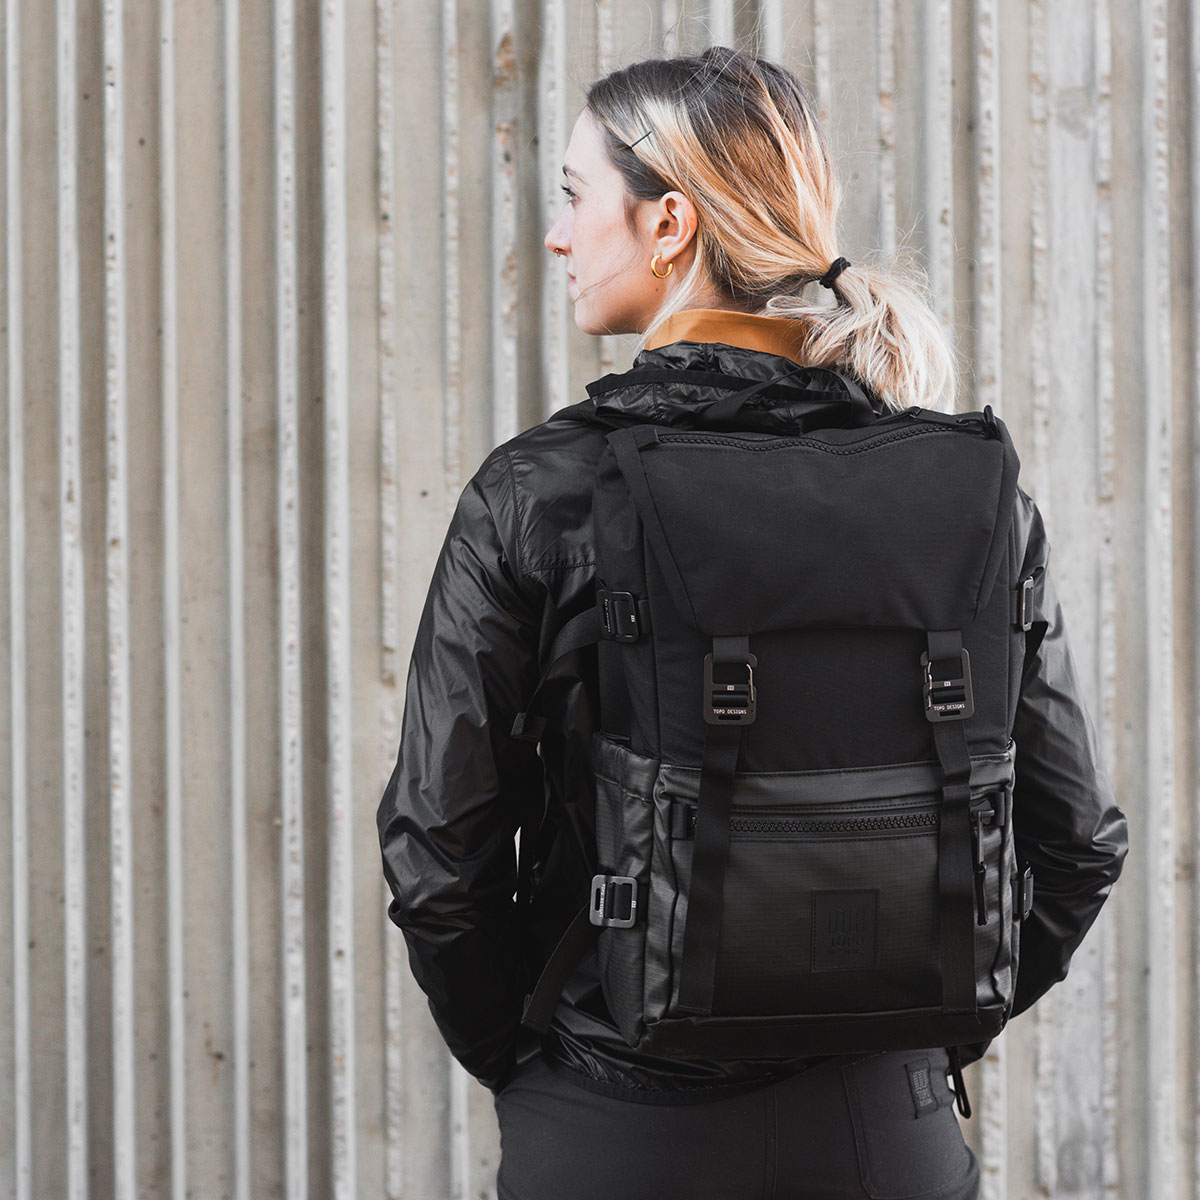 Topo Designs Rover Pack Premium Black, designed with a unique, luxury feel